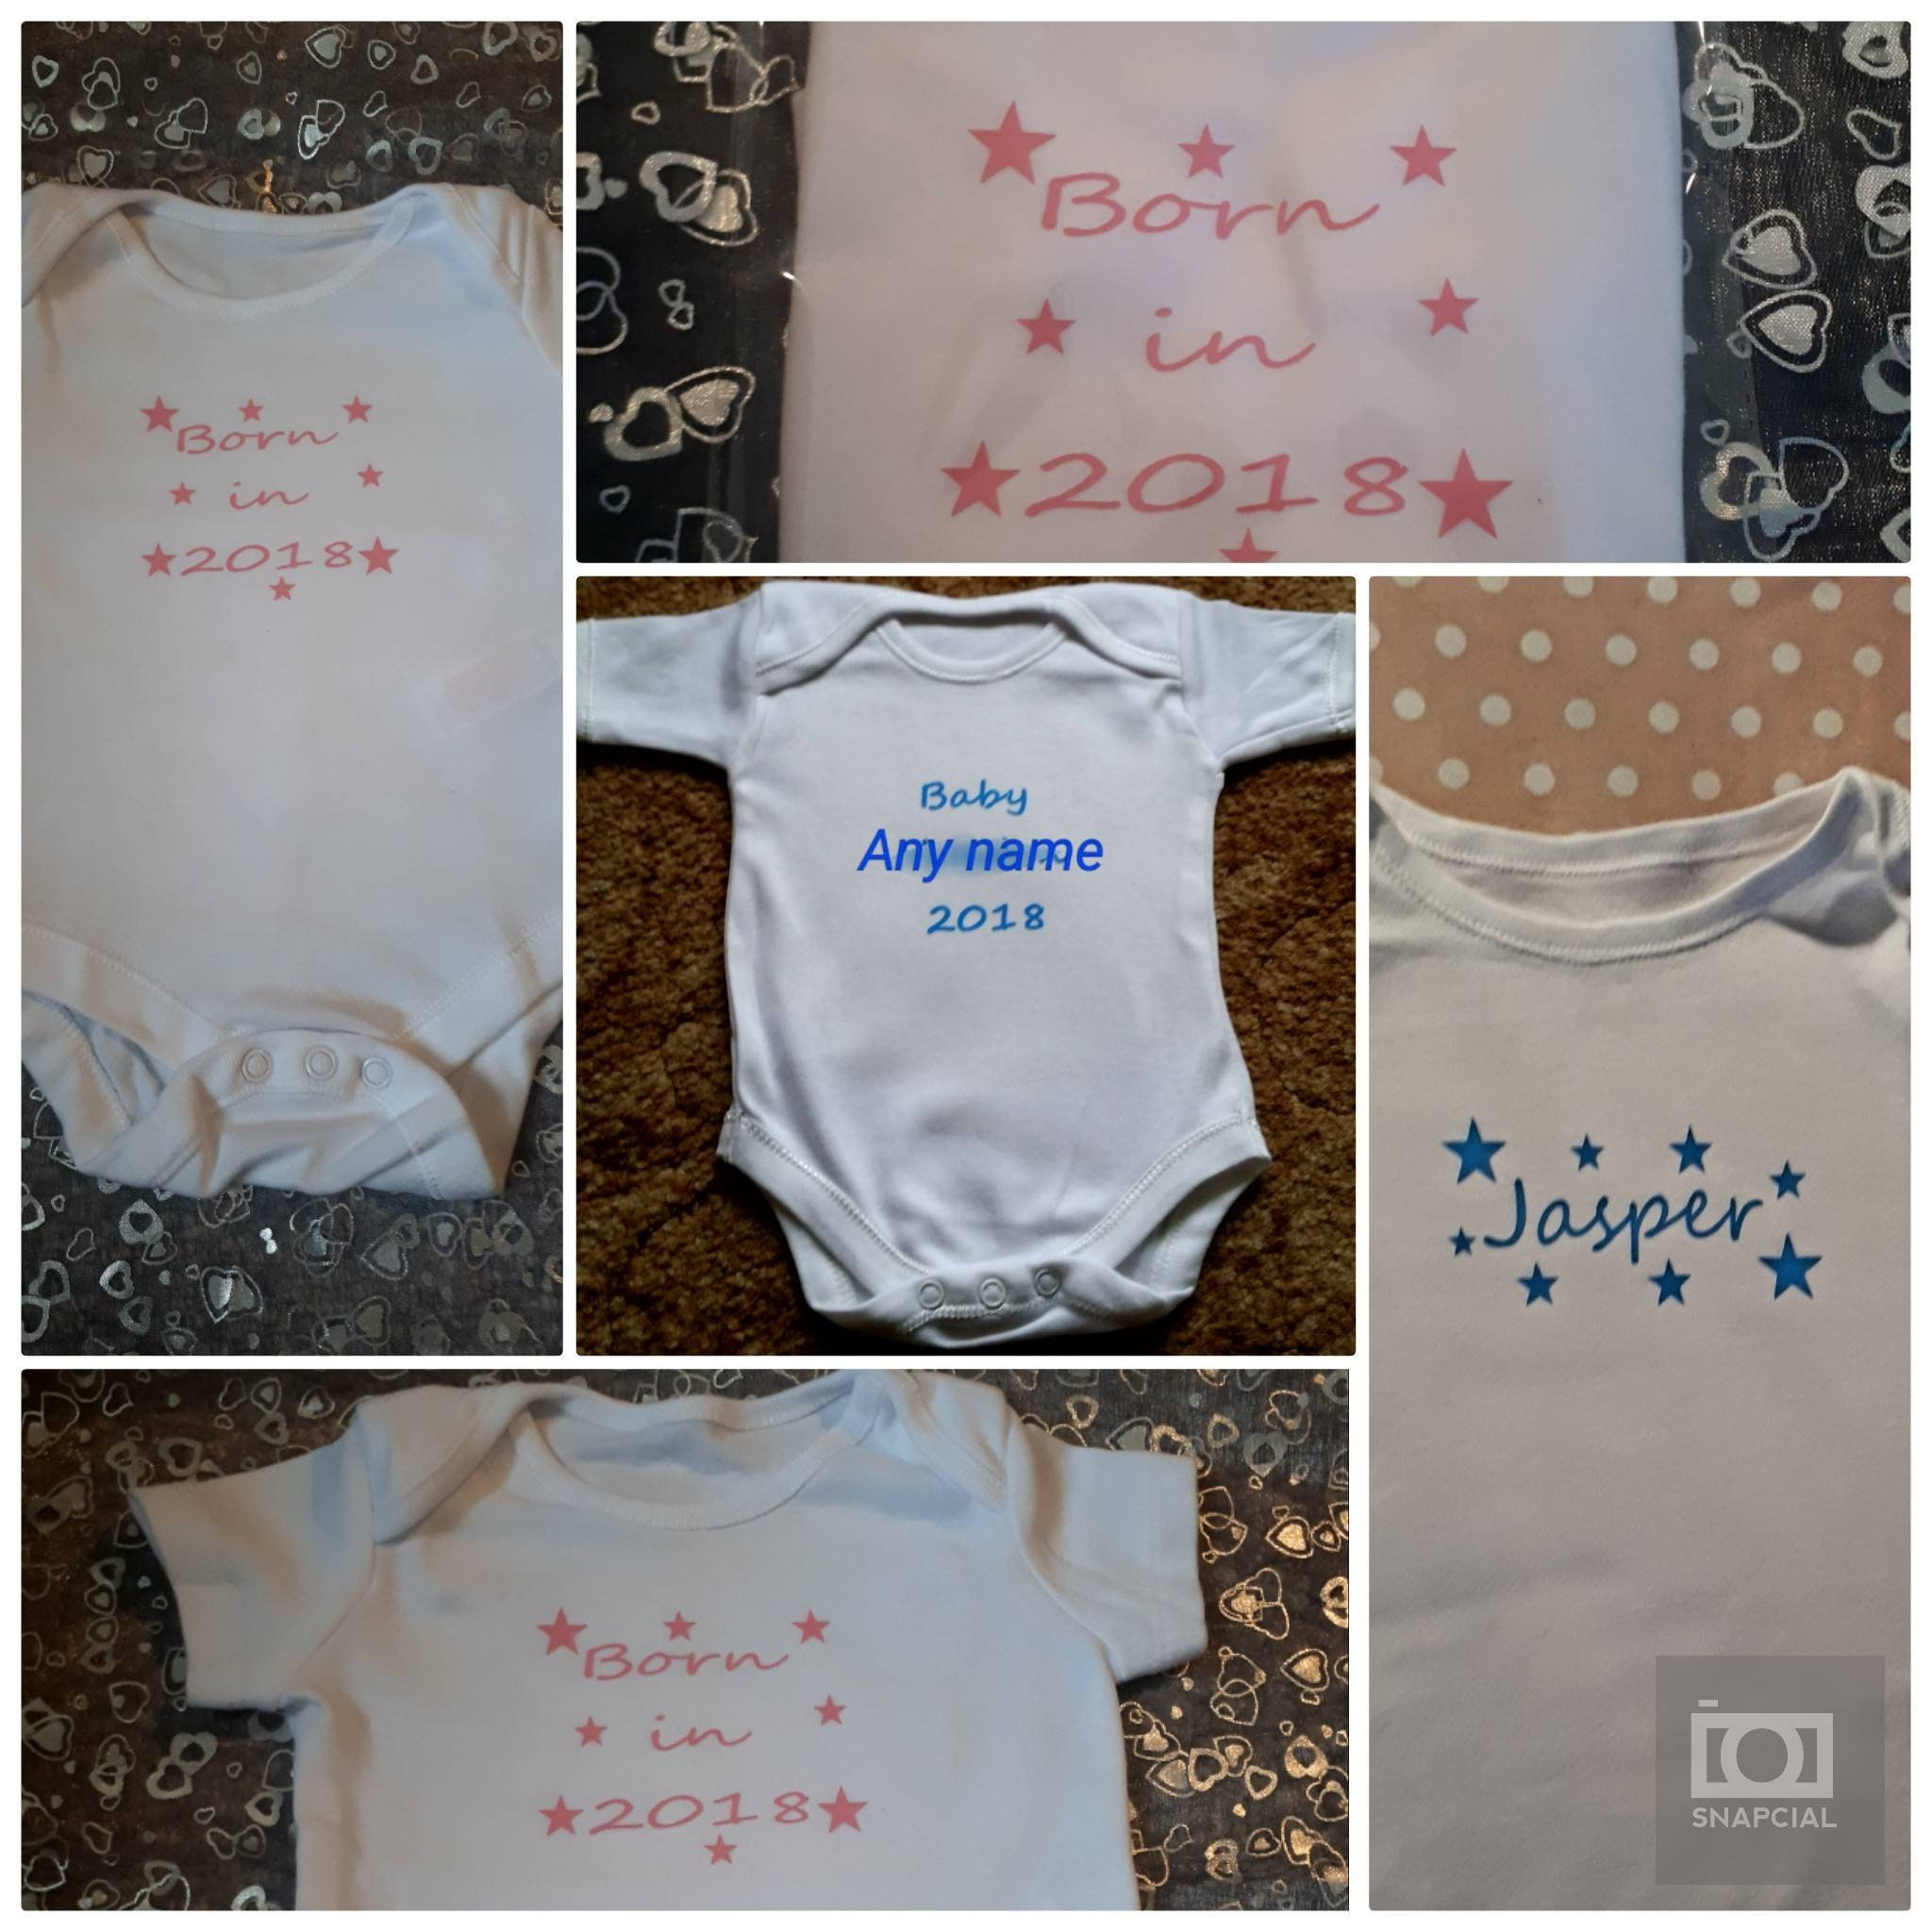 fiver friday, Born in 2018, baby grow, new baby, baby shower, new baby, 2018, baby boy, baby girl, baby shower present, birth present